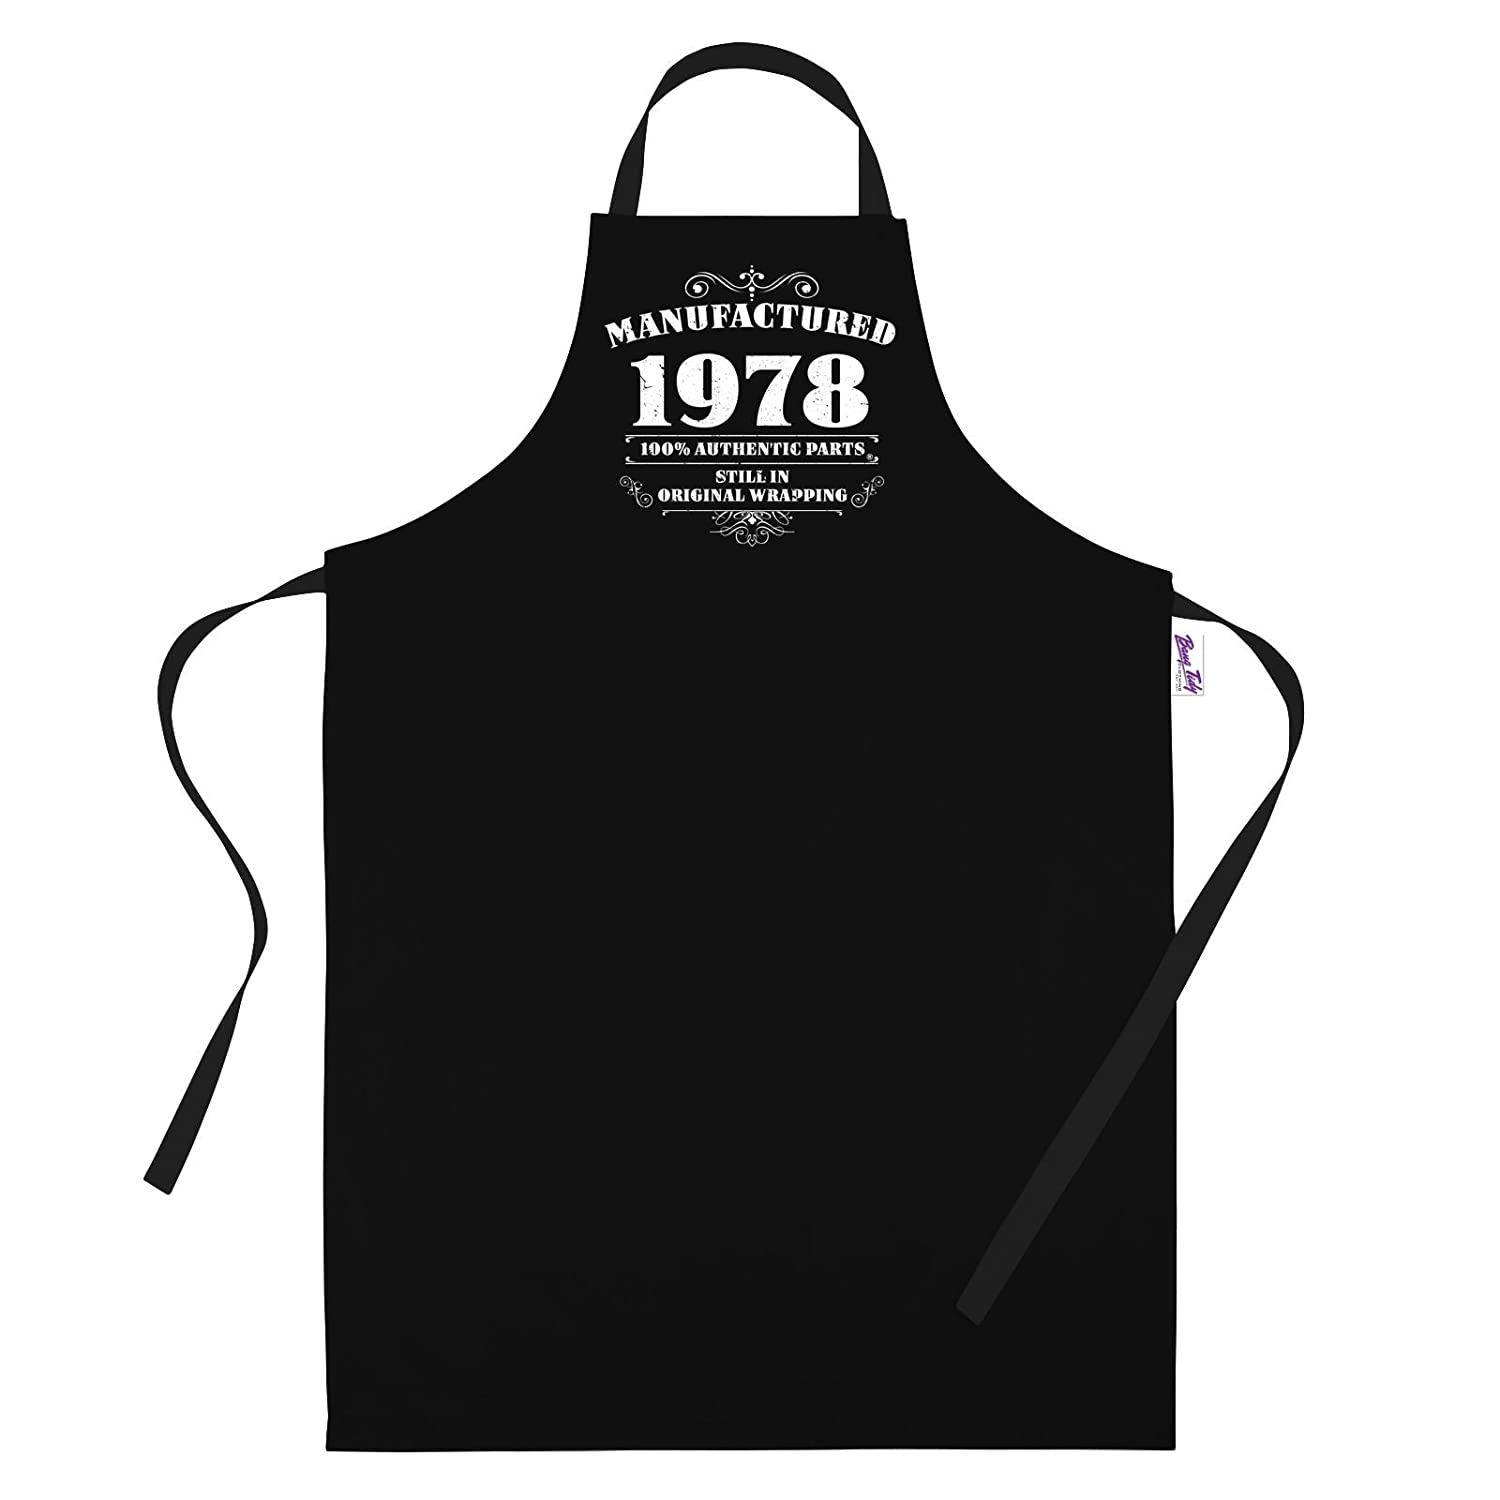 Bang Tidy Clothing 40th Birthday Gifts for Men Him Dad Husband Manufactured 1978 BBQ Cooking Apron RA506